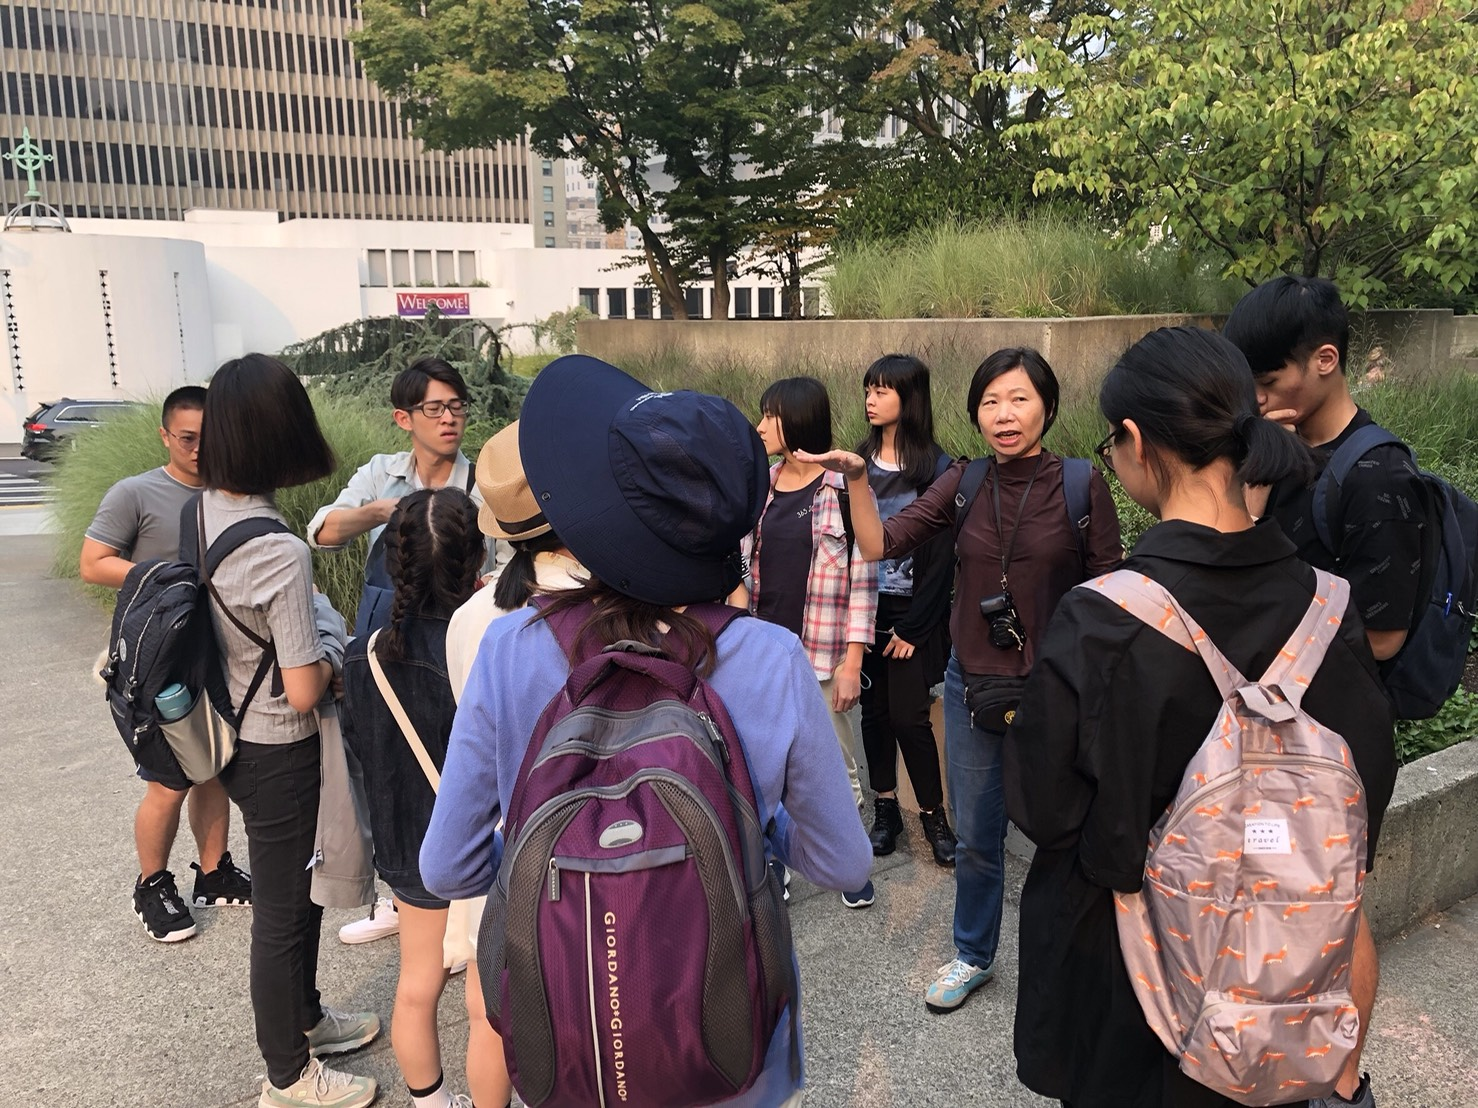 The Department of Landscape Architecture of Tunghai University has been organizing overseas study trips for 8 years since 2011.